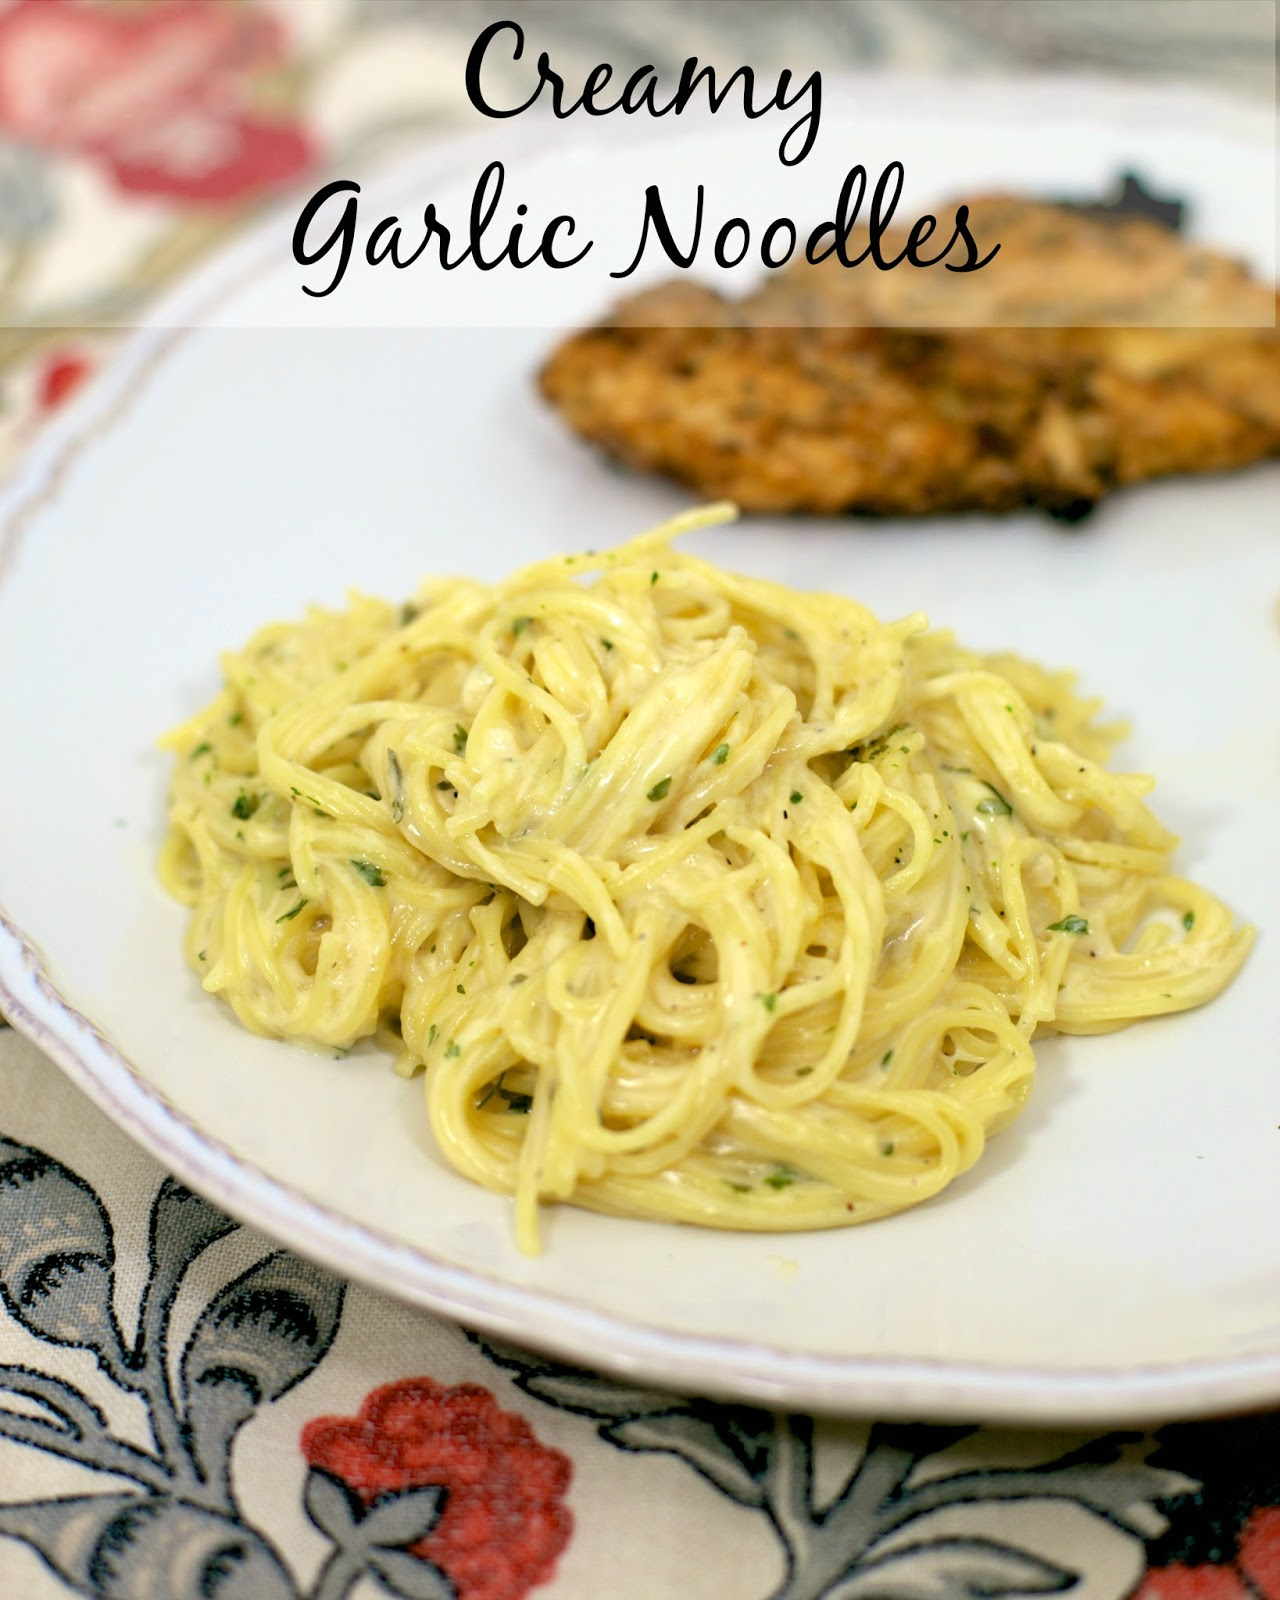 Creamy Garlic Noodles {Homemade Pasta Roni} - SOOO much better than the boxed stuff. We make this all the time. Easy and super delicious! Everything is made in the same pot!  Ready in about 15 minutes. You'll never use the boxed stuff again.